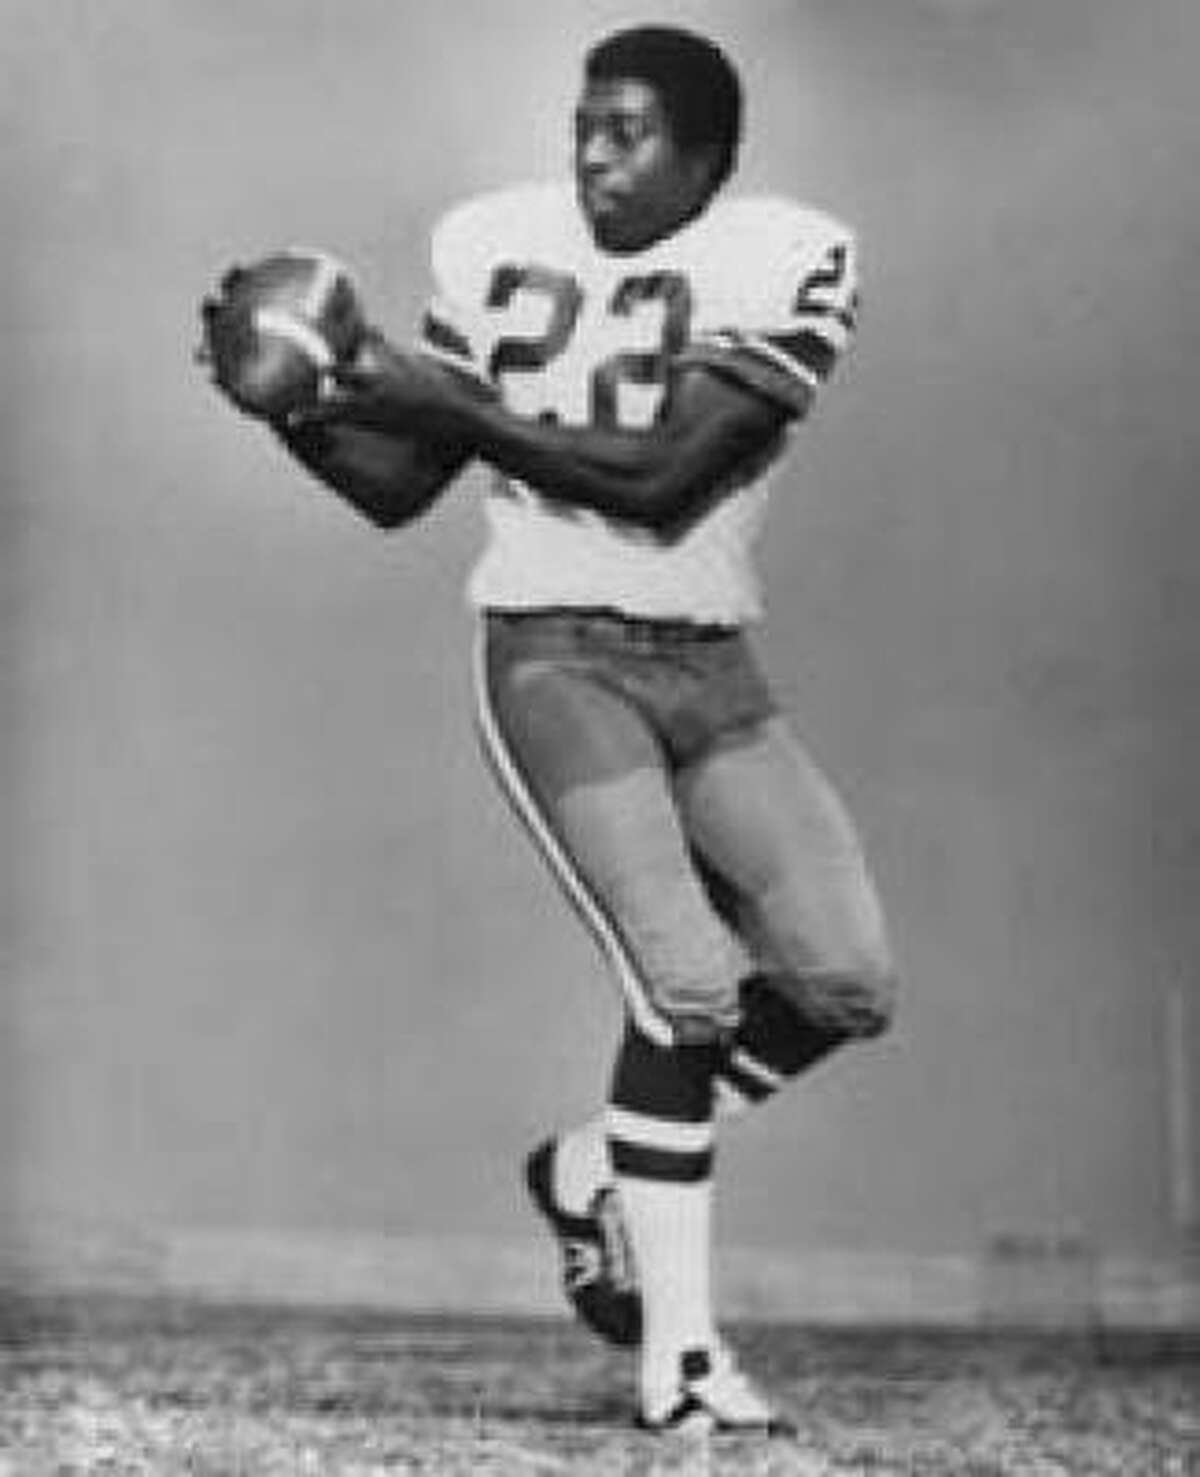 Bob Hayes - Wide Receiver - 1965-1974 Dallas Cowboys, 1974 San Francisco 49ers. It took Hayes, who was also an Olympic gold medal sprinter, 29 years to get into the Hall. He died in September 2002.